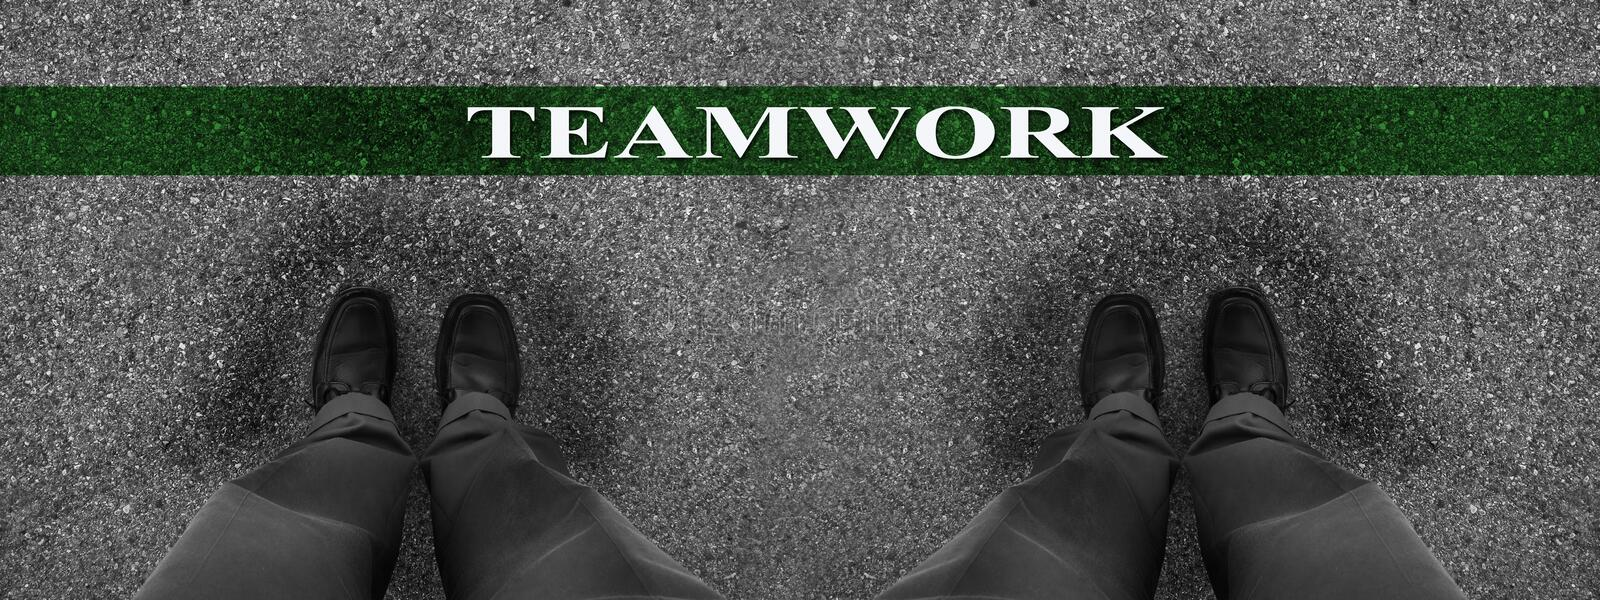 Download Business Teamwork stock image. Image of better, grow - 34989599